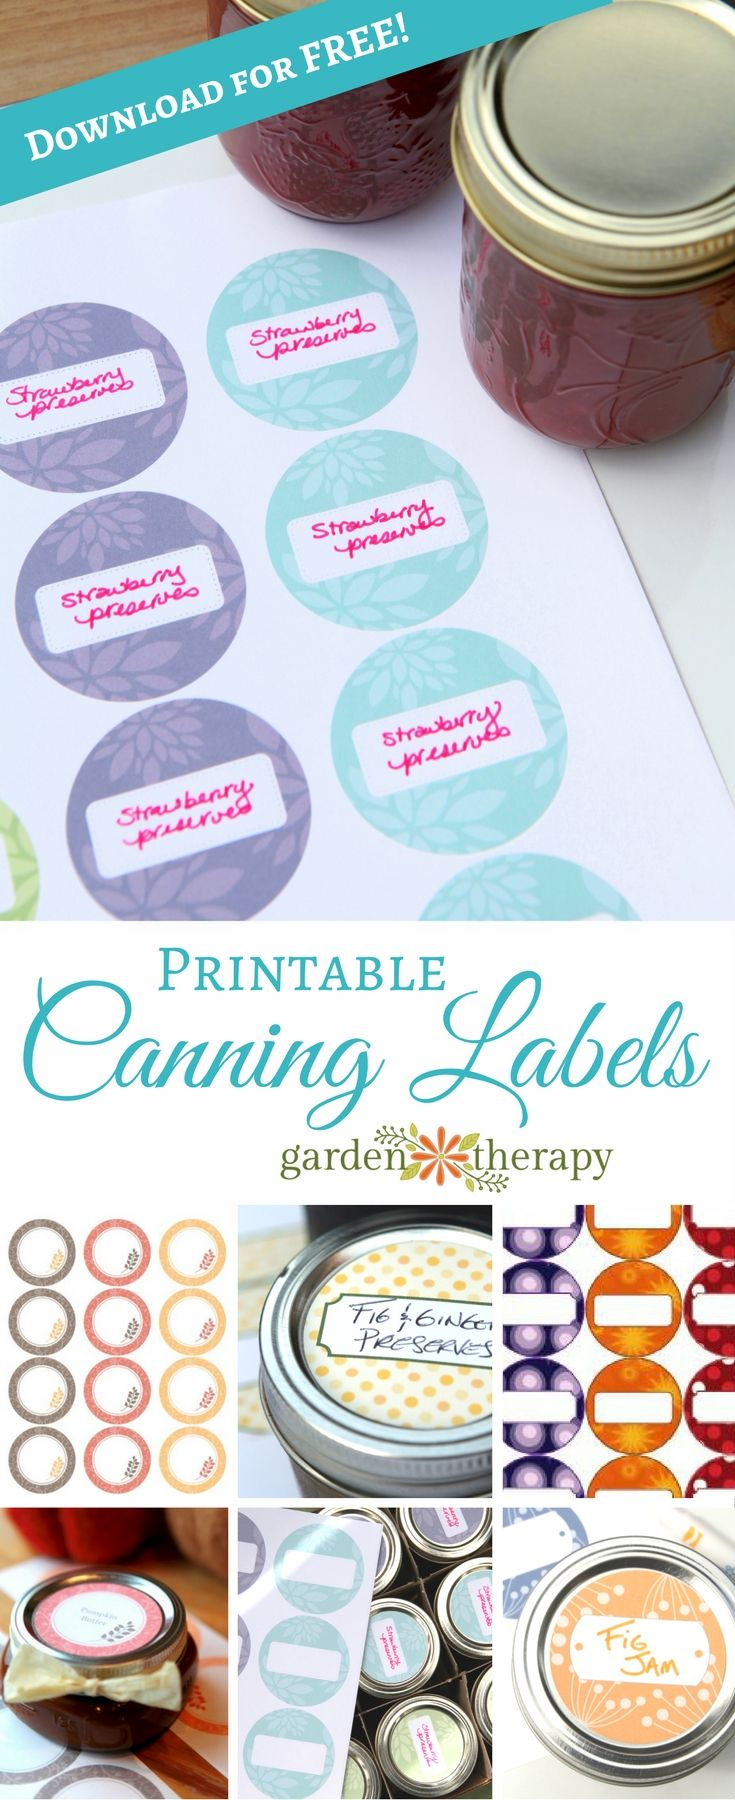 photo about Free Printable Canning Labels known as Do it yourself Crafts : Totally free Printable Canning Labels - a great number of layouts in direction of